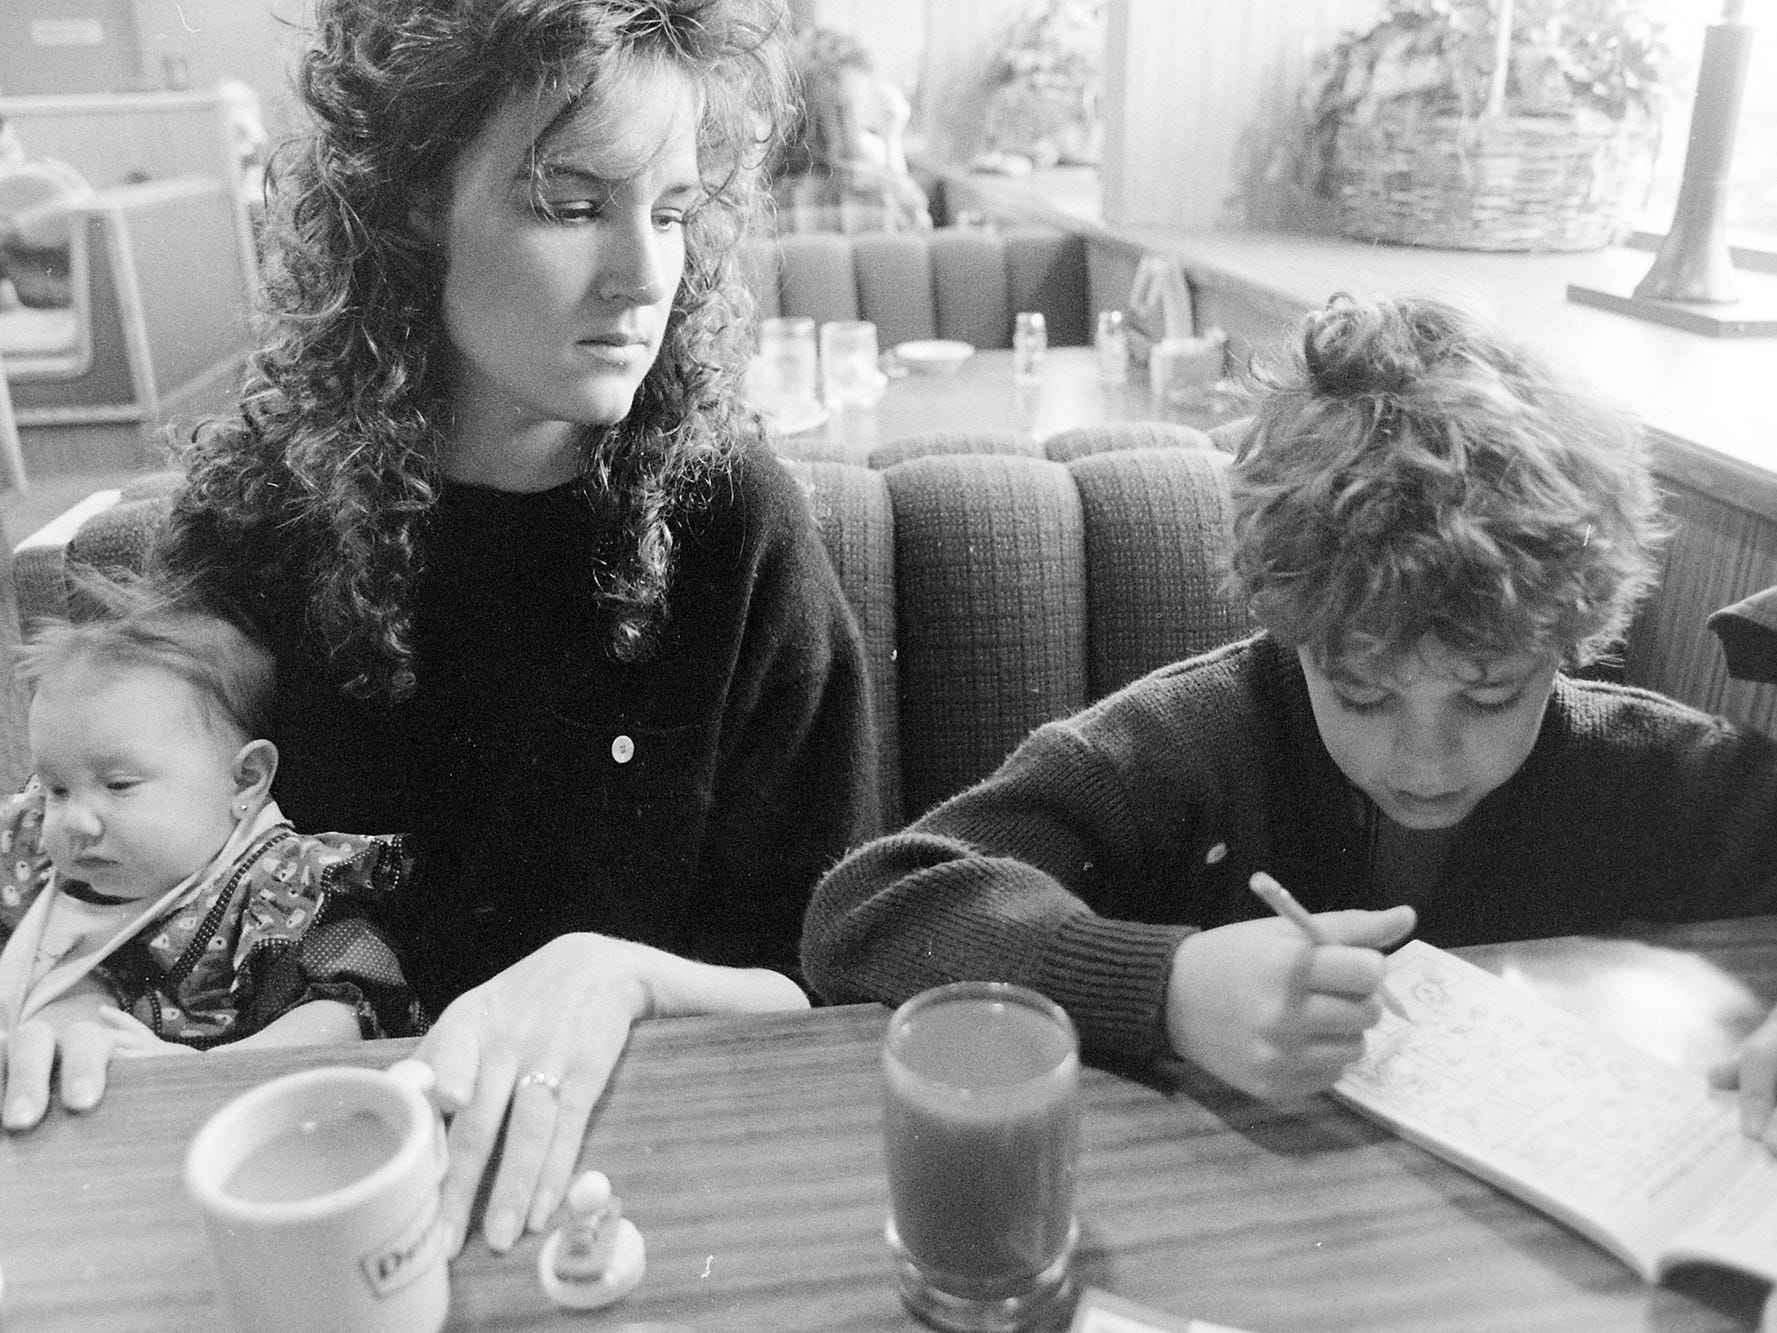 01/02/91Lunch At Dennys